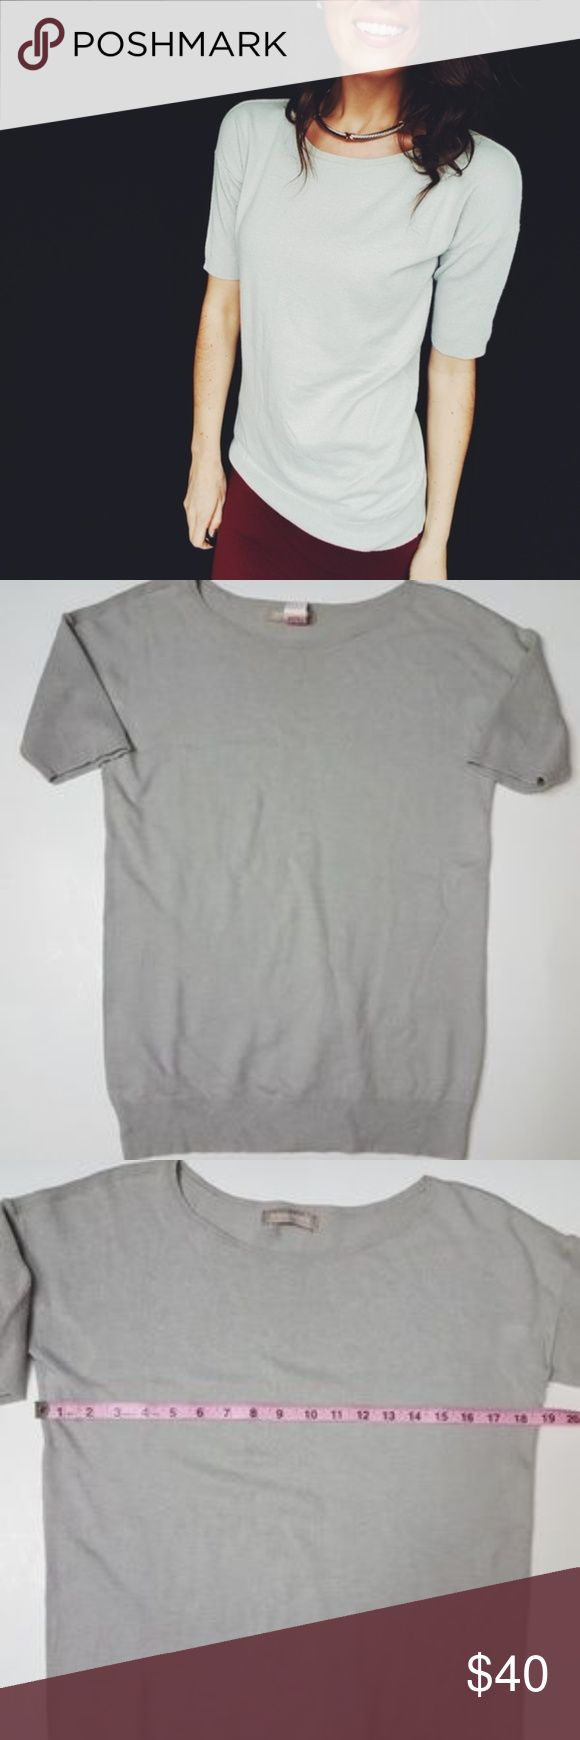 Banana Republic gray short sleeve sweater top -C4 In good condition! Stunning Banana Republic sweater top, size medium. Soft, cozy material. Perfect for days you want to be cozy and look cute! Materials tag from the same sweater I have in blue. The materials tag on the gray sweater has been removed. Used item: inspected for quality and wear. Pictures show any signs of wear and use. Bundle up! Offers always welcome:) Banana Republic Tops